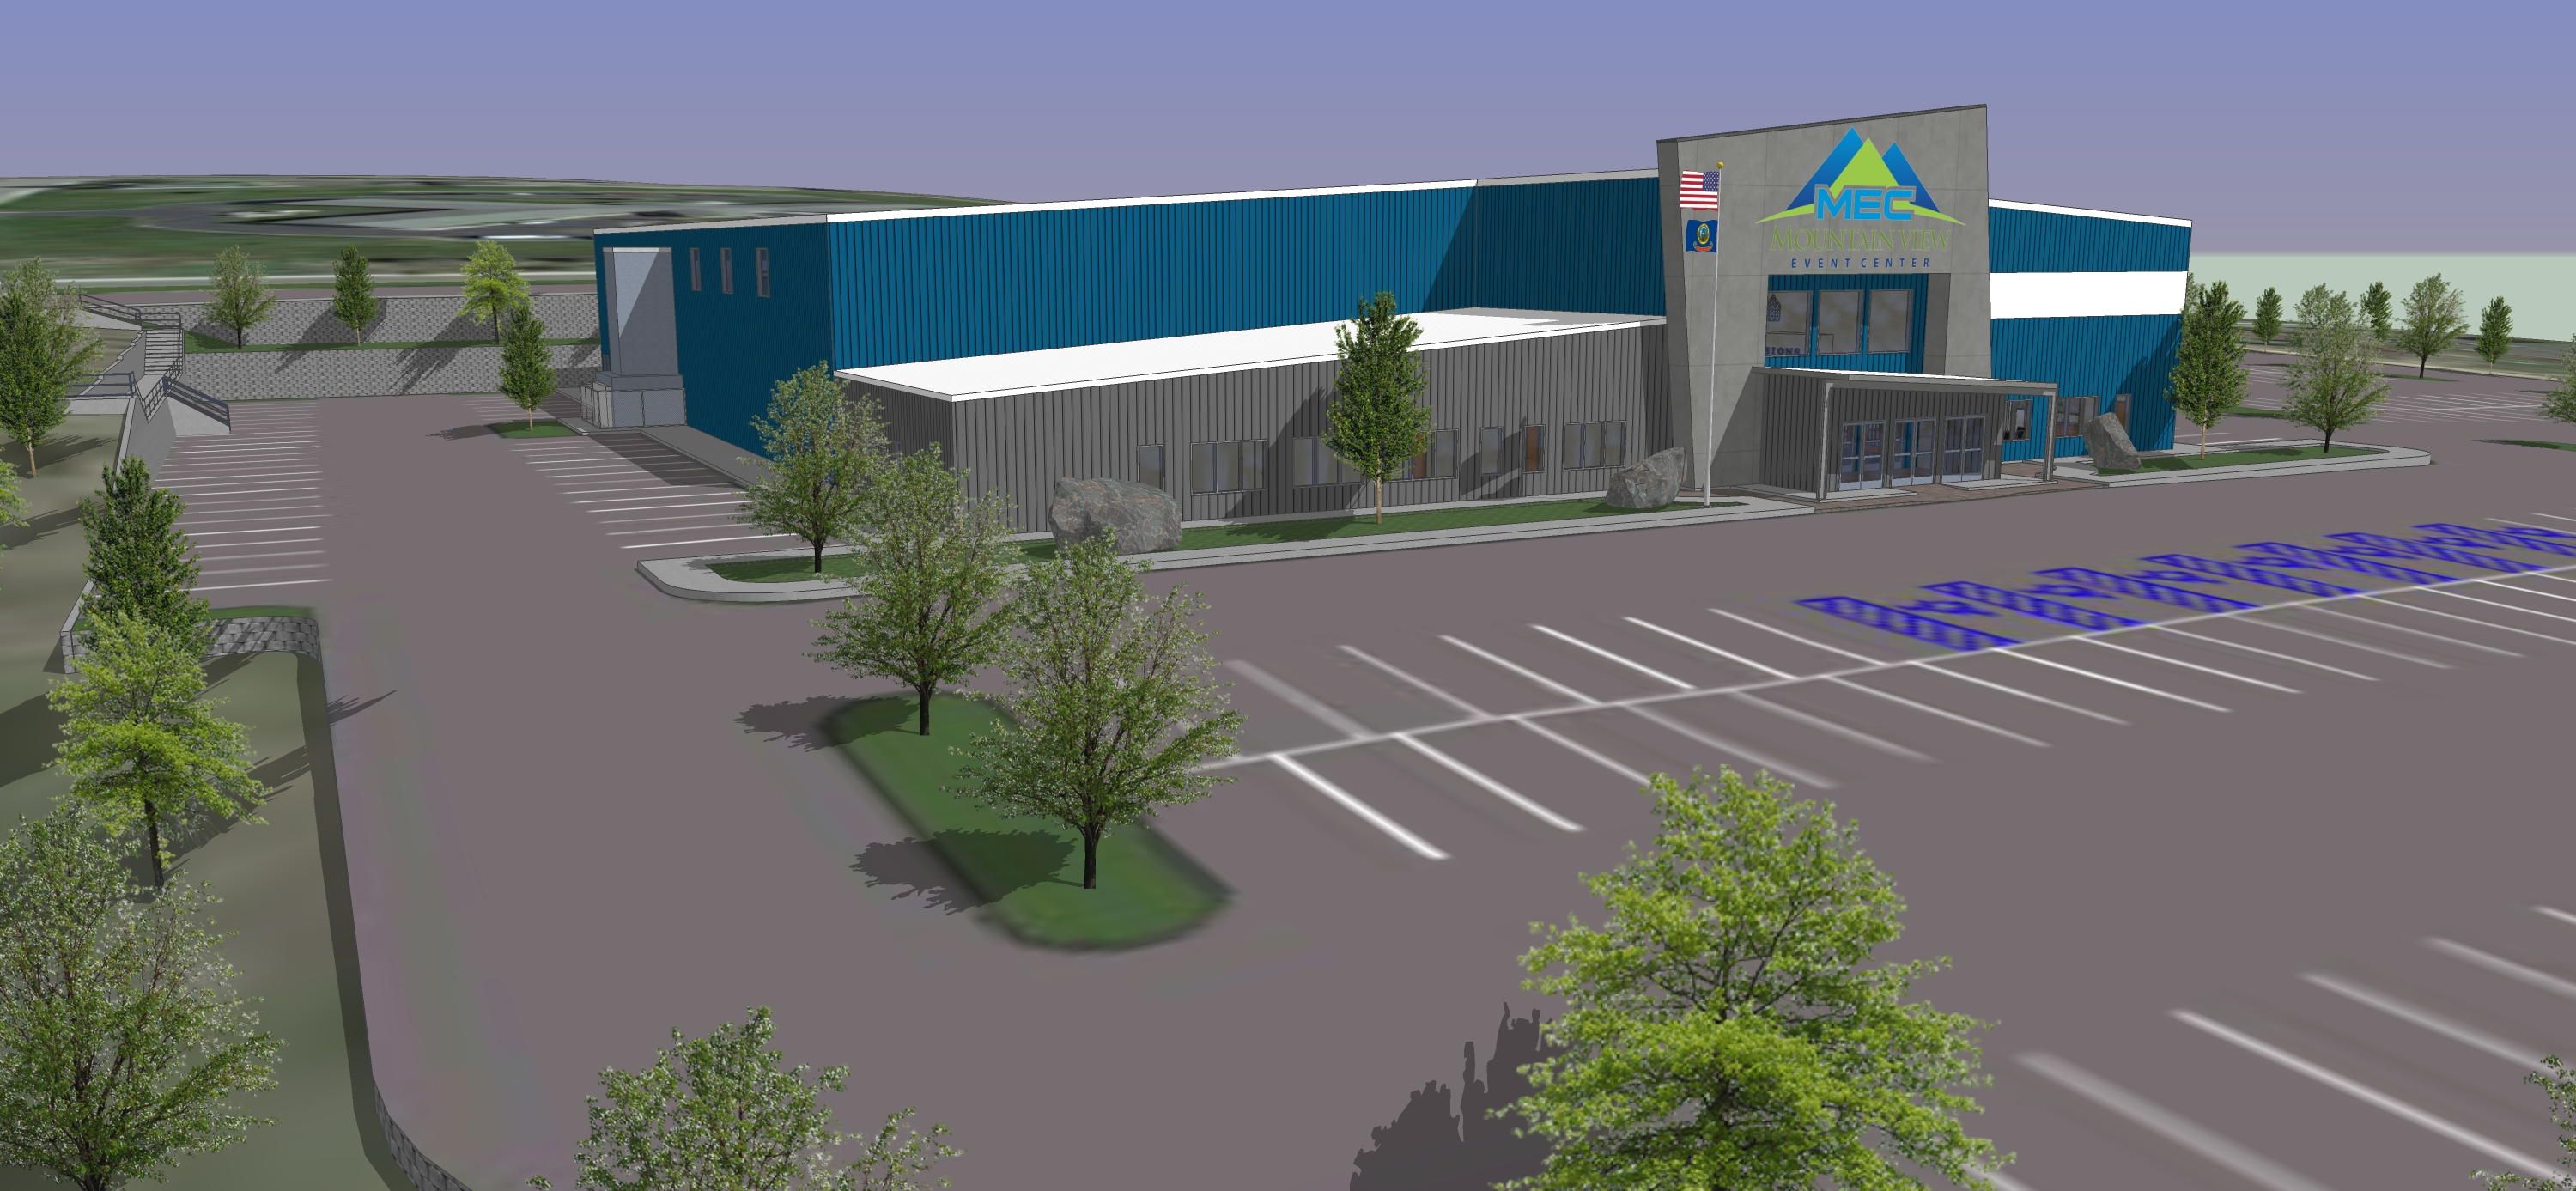 Mountain View Event Center 3D Facility Slideshow 12